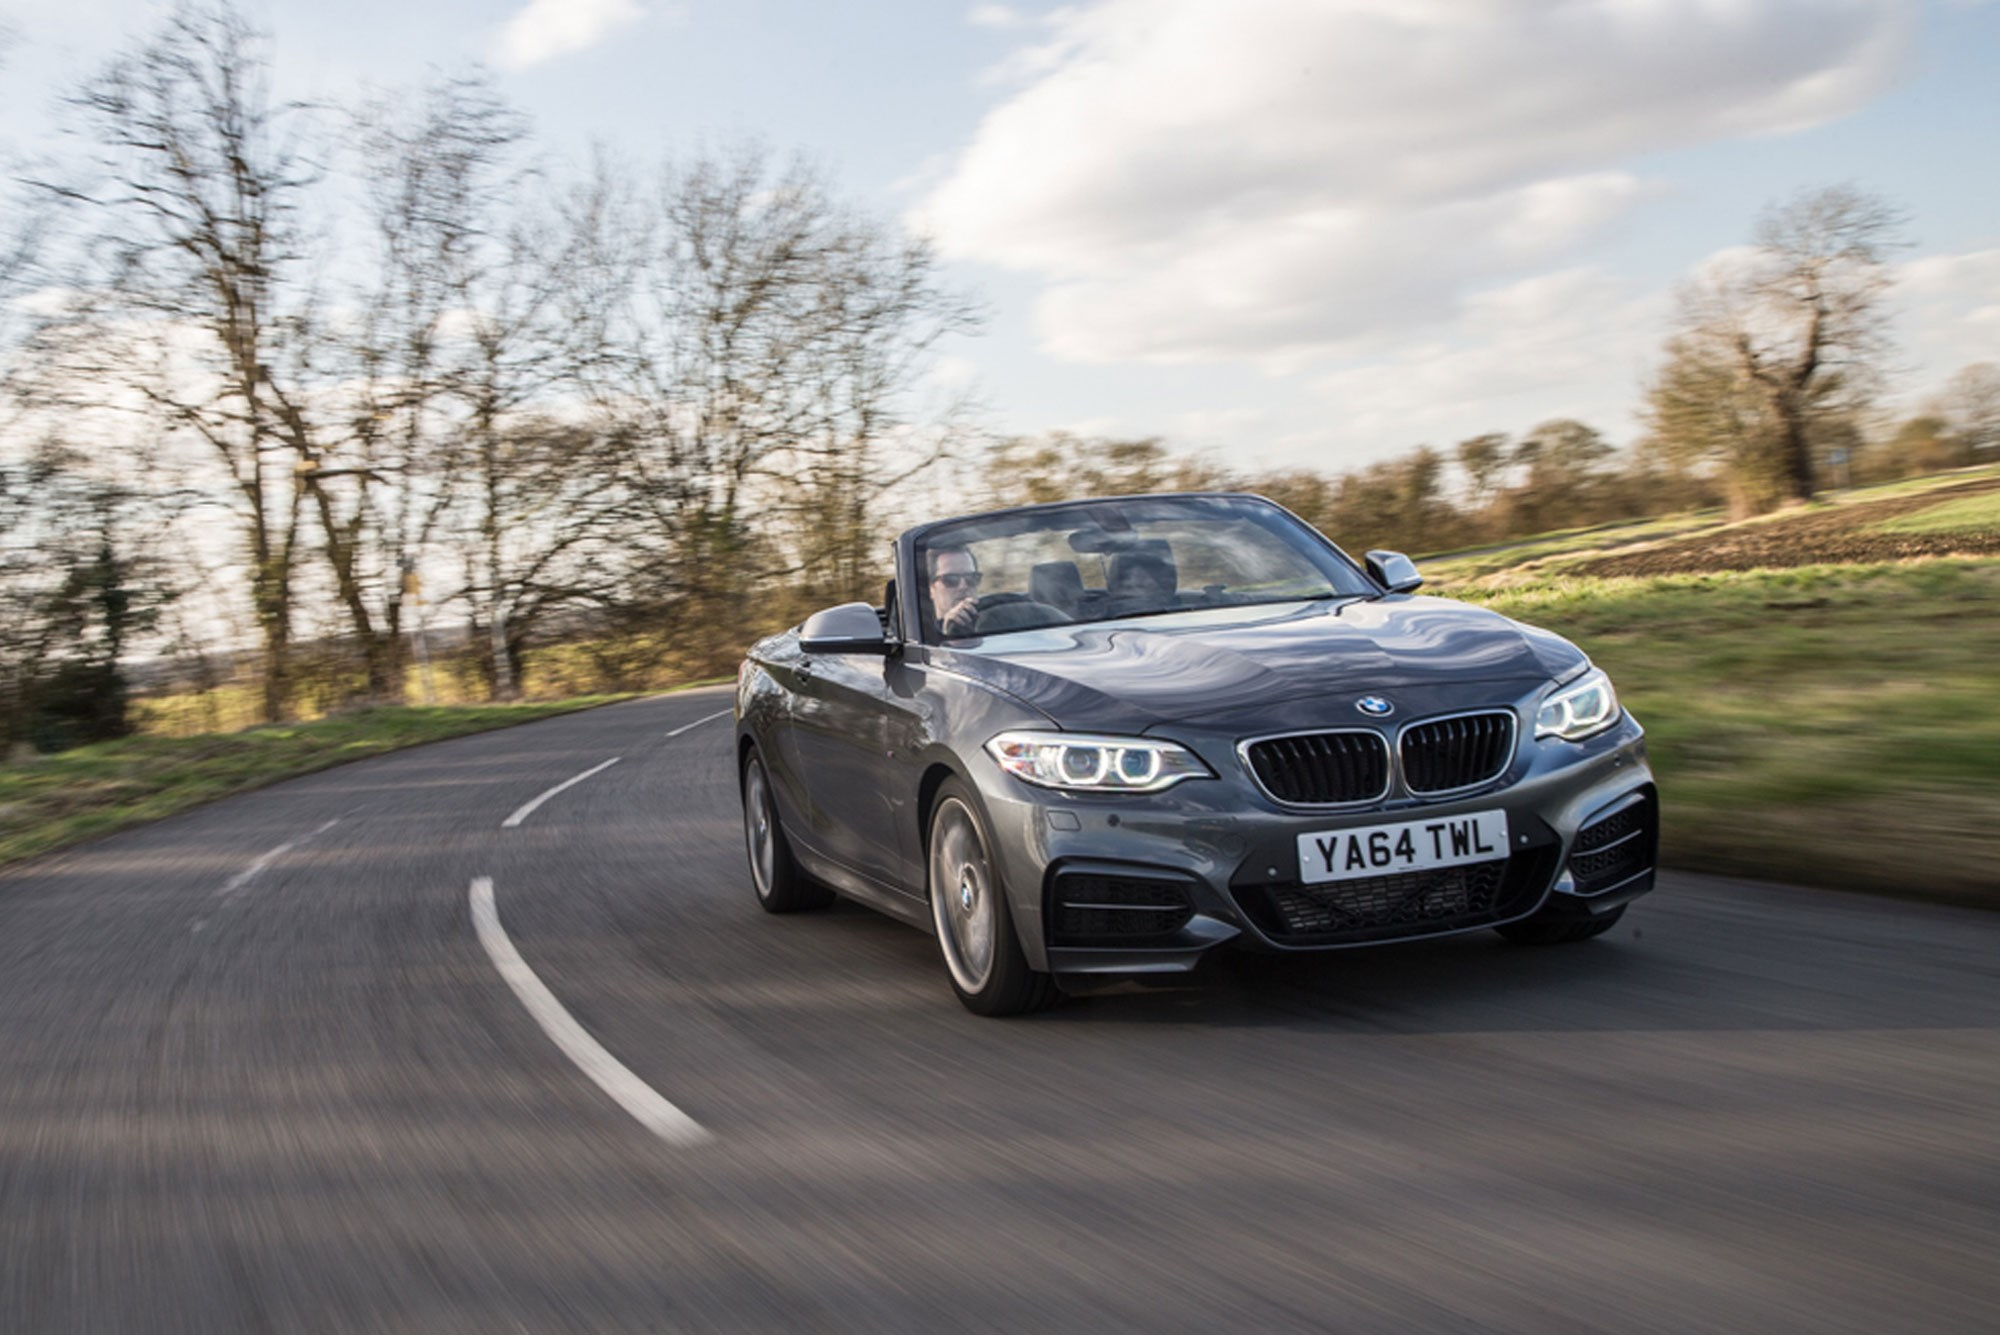 Bmw M235i Convertible 2017 Review